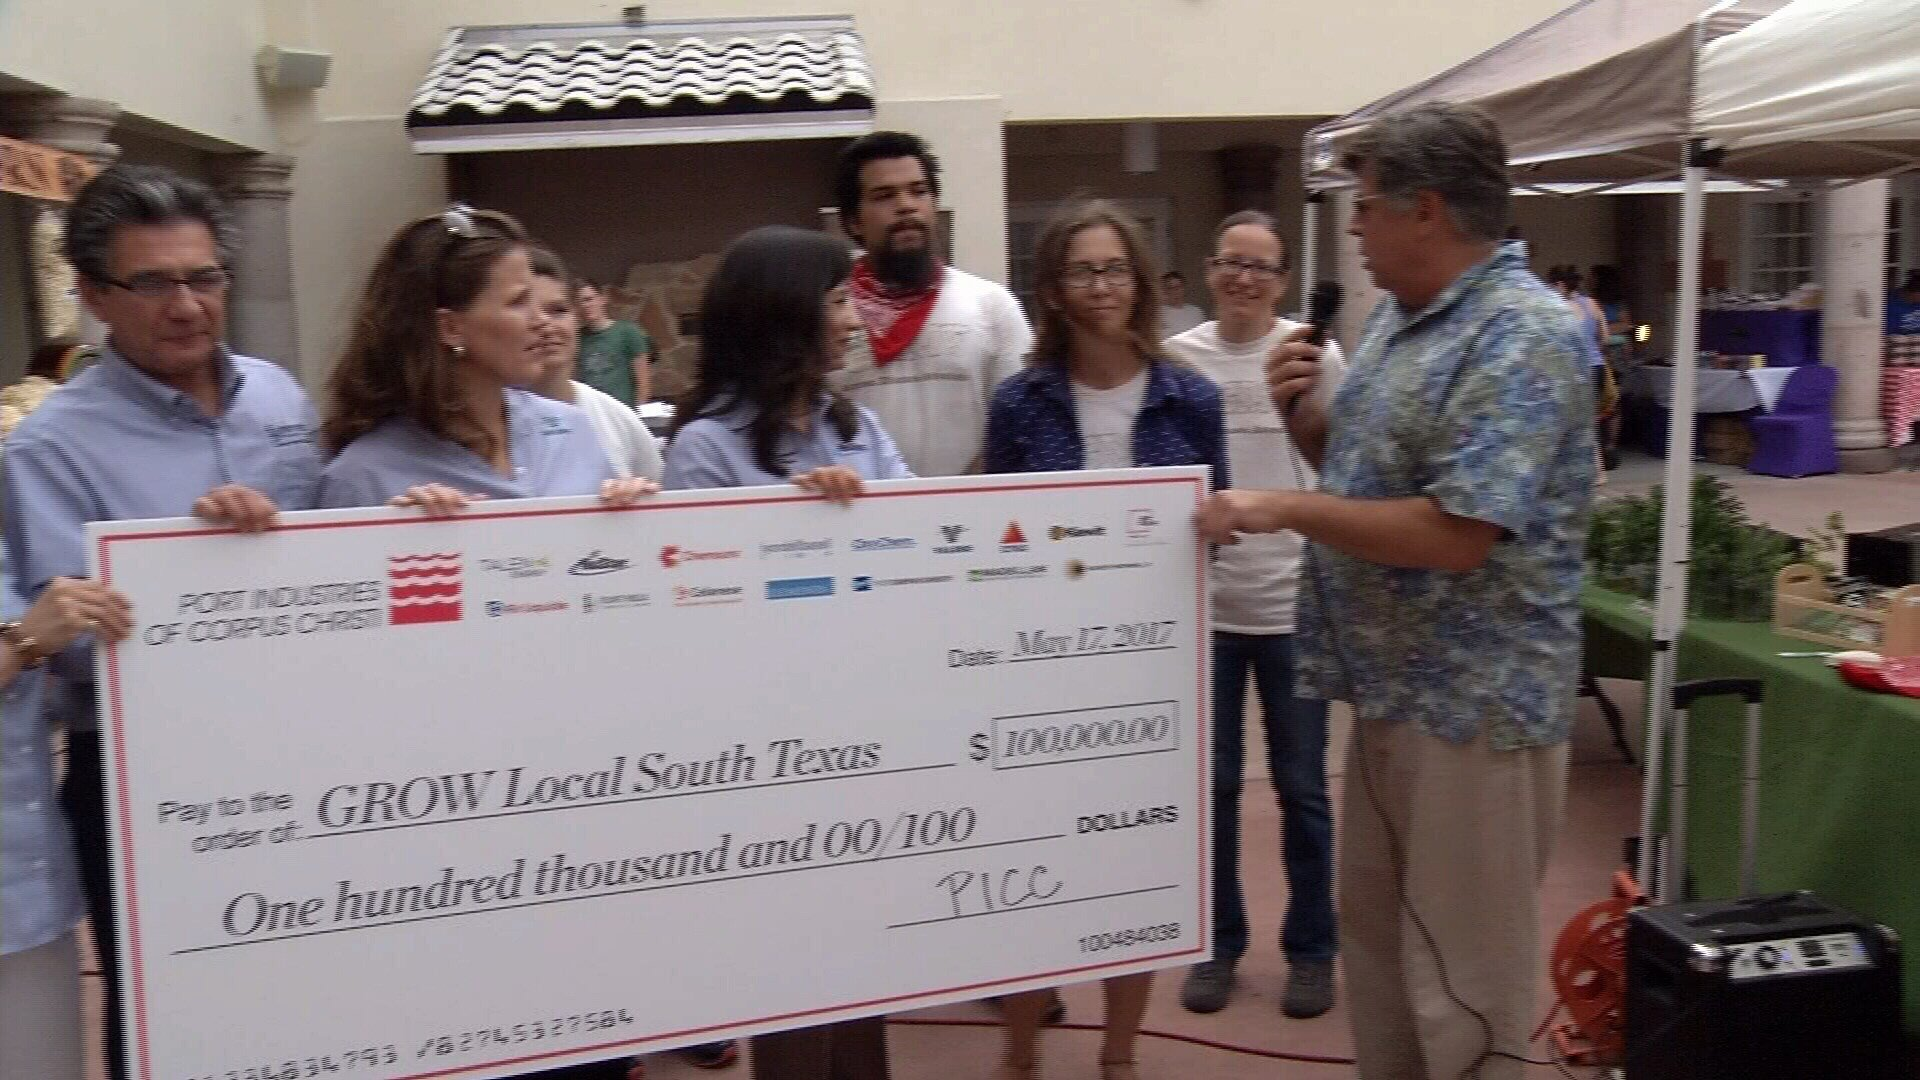 Port Industries Executive Director Bob Paulison presents a $100,000 check to Grow Local South Texas. (KRIS)